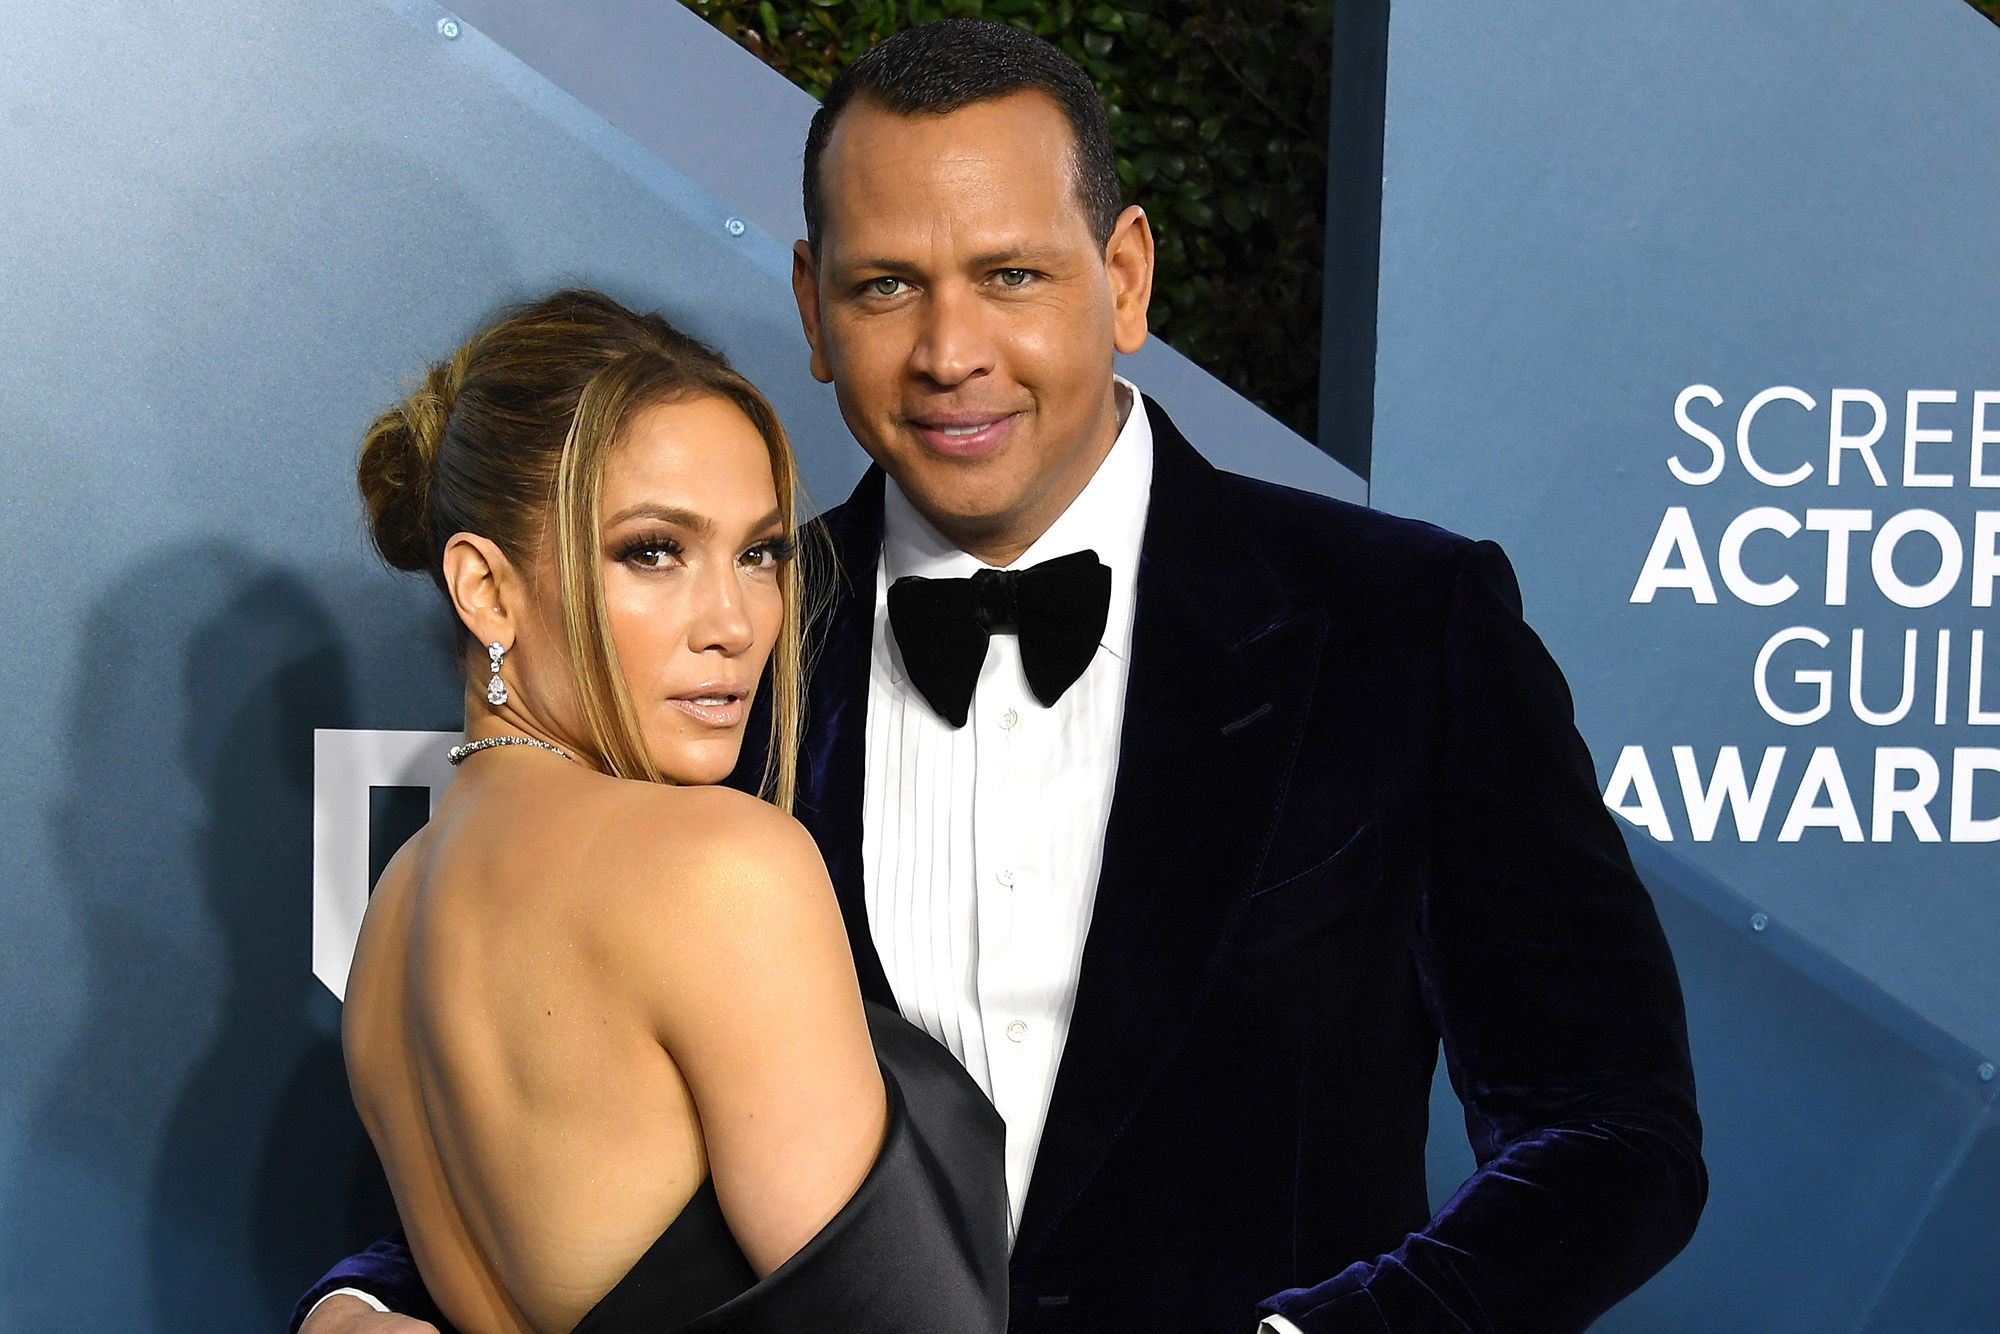 Shocking: Alex Rodriguez has never been in love with JLO - Revealed why he was with her